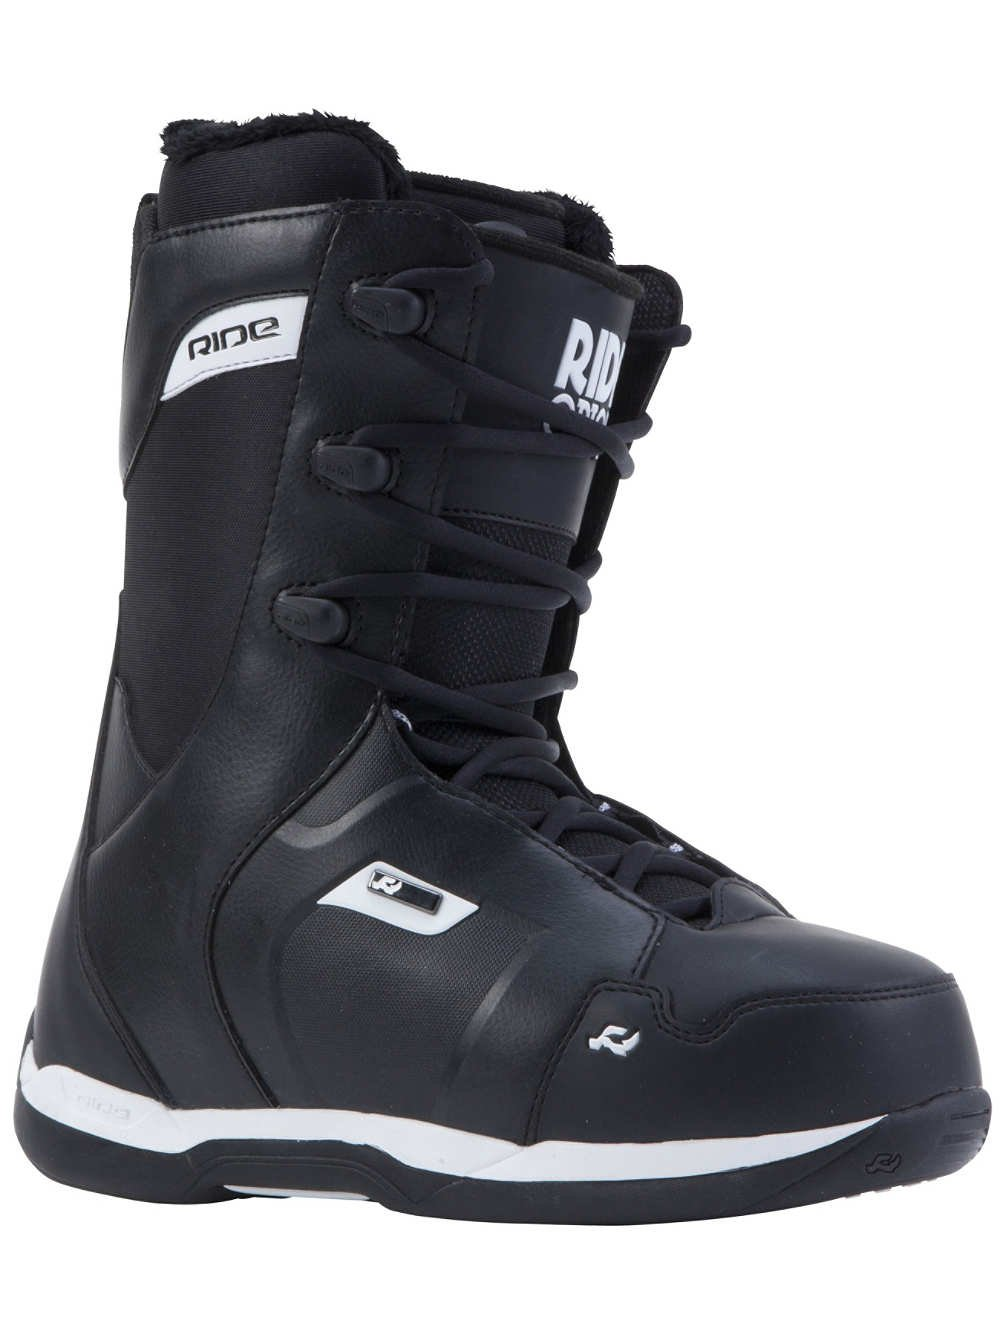 Ride Orion Snowboard Boot - Men's Black, 13.0 by Ride Snowboards